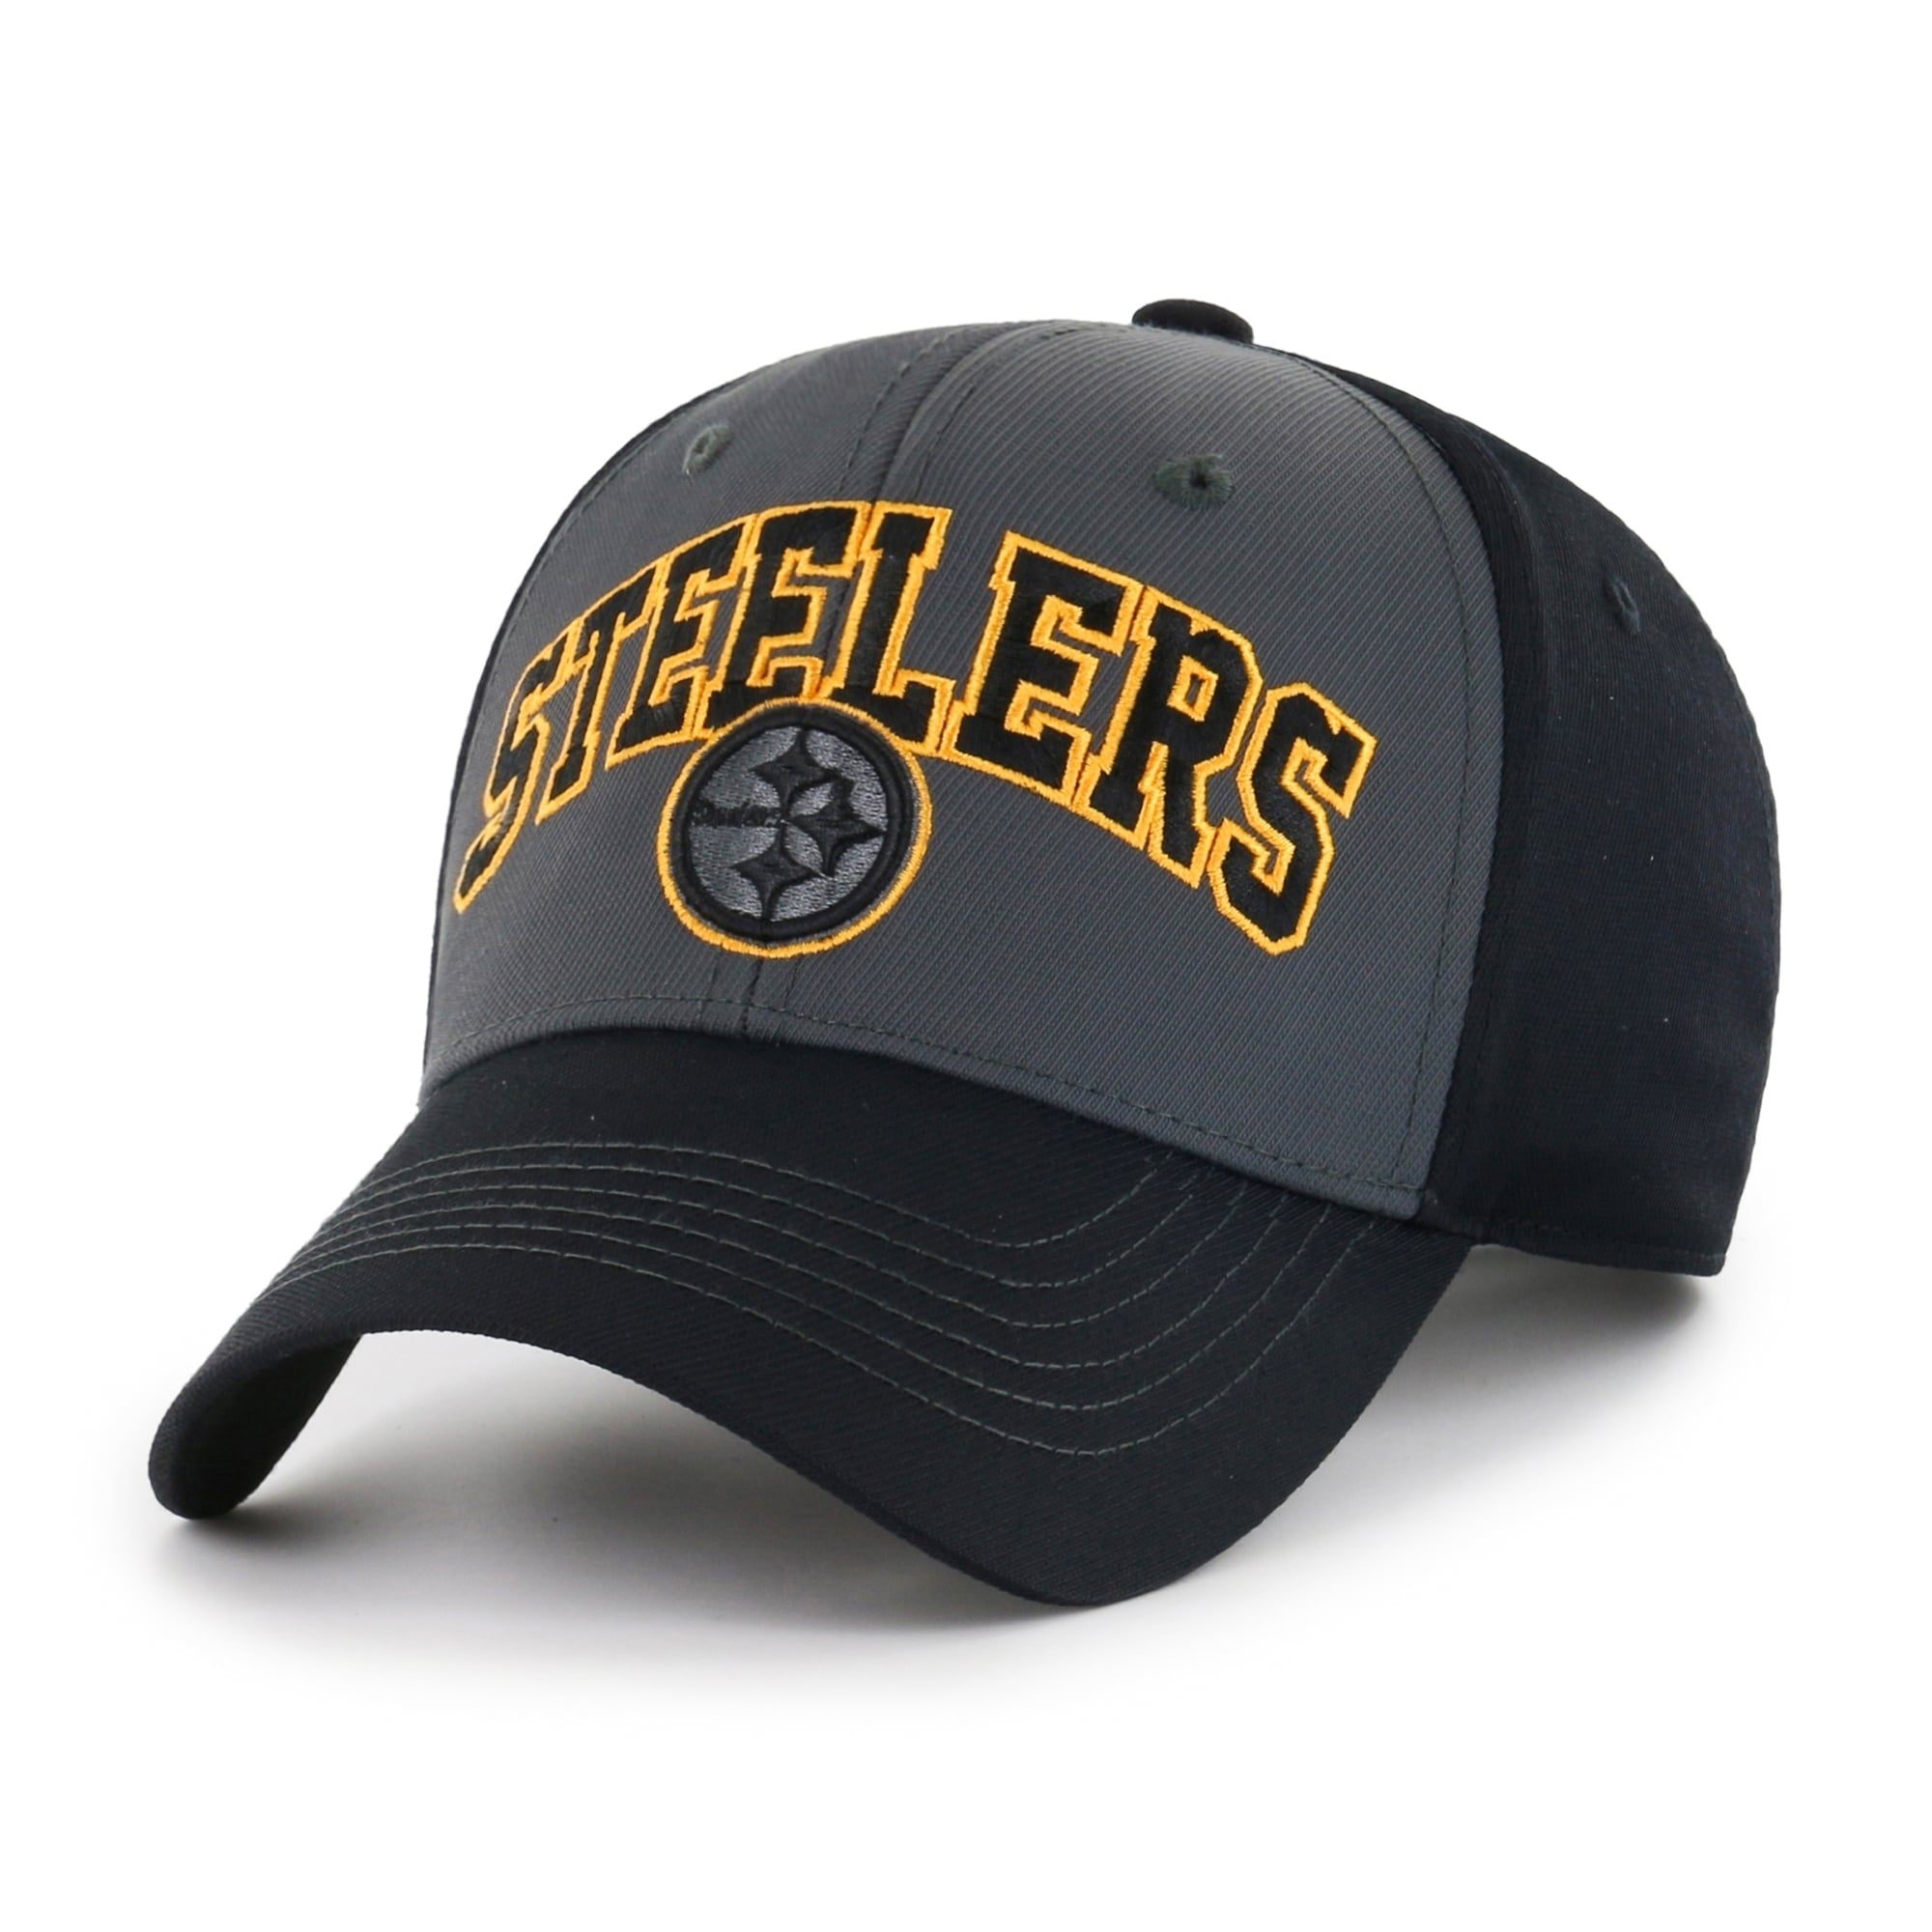 Pittsburgh Steelers Blackball Script Adjustable Hat - Diamond Home USA